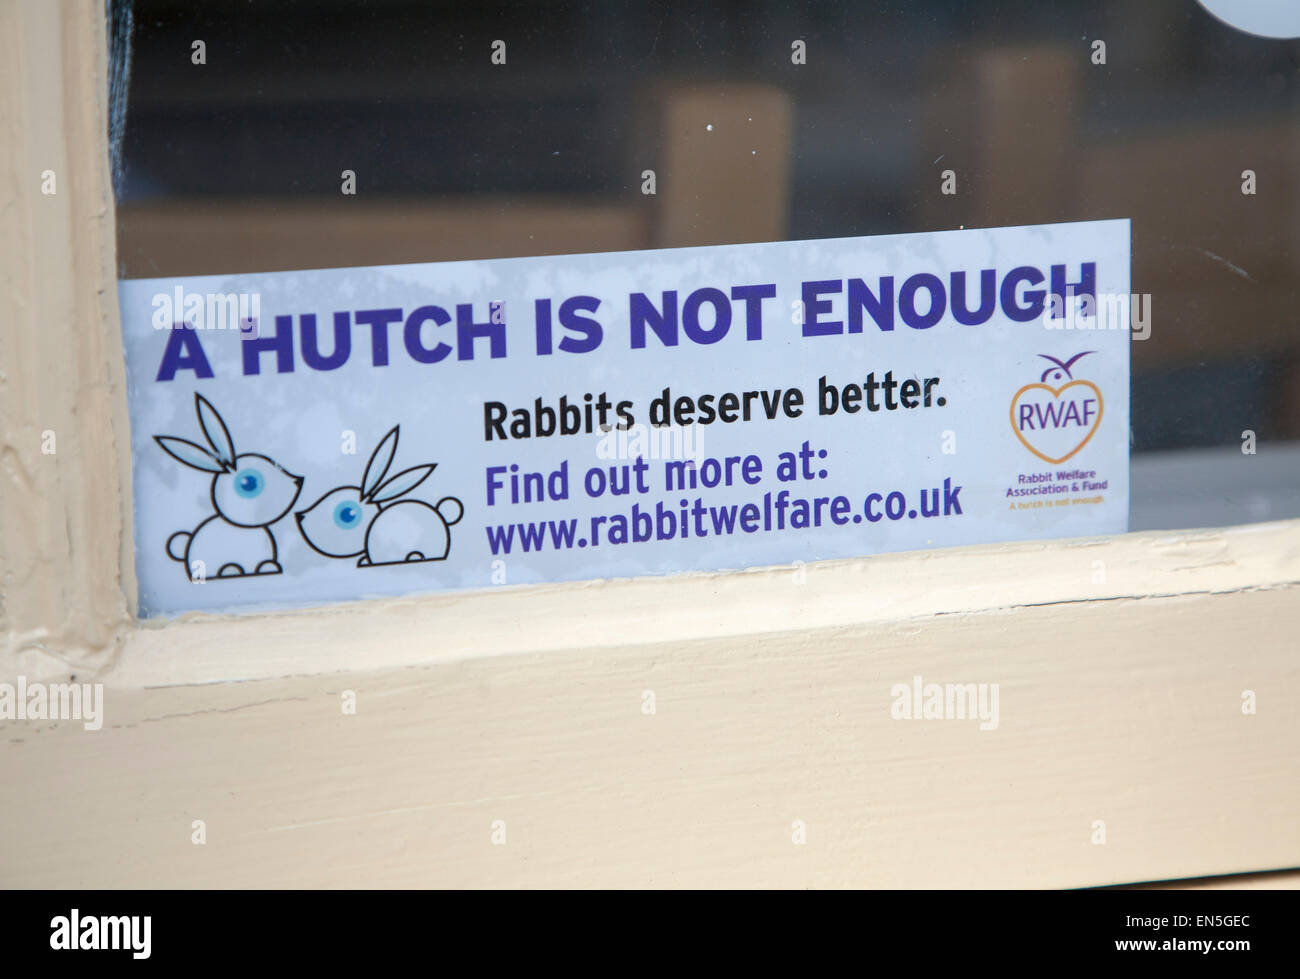 Sign in window saying 'A Hutch is not Enough - rabbits deserve better', Rabbit Welfare, UK - Stock Image